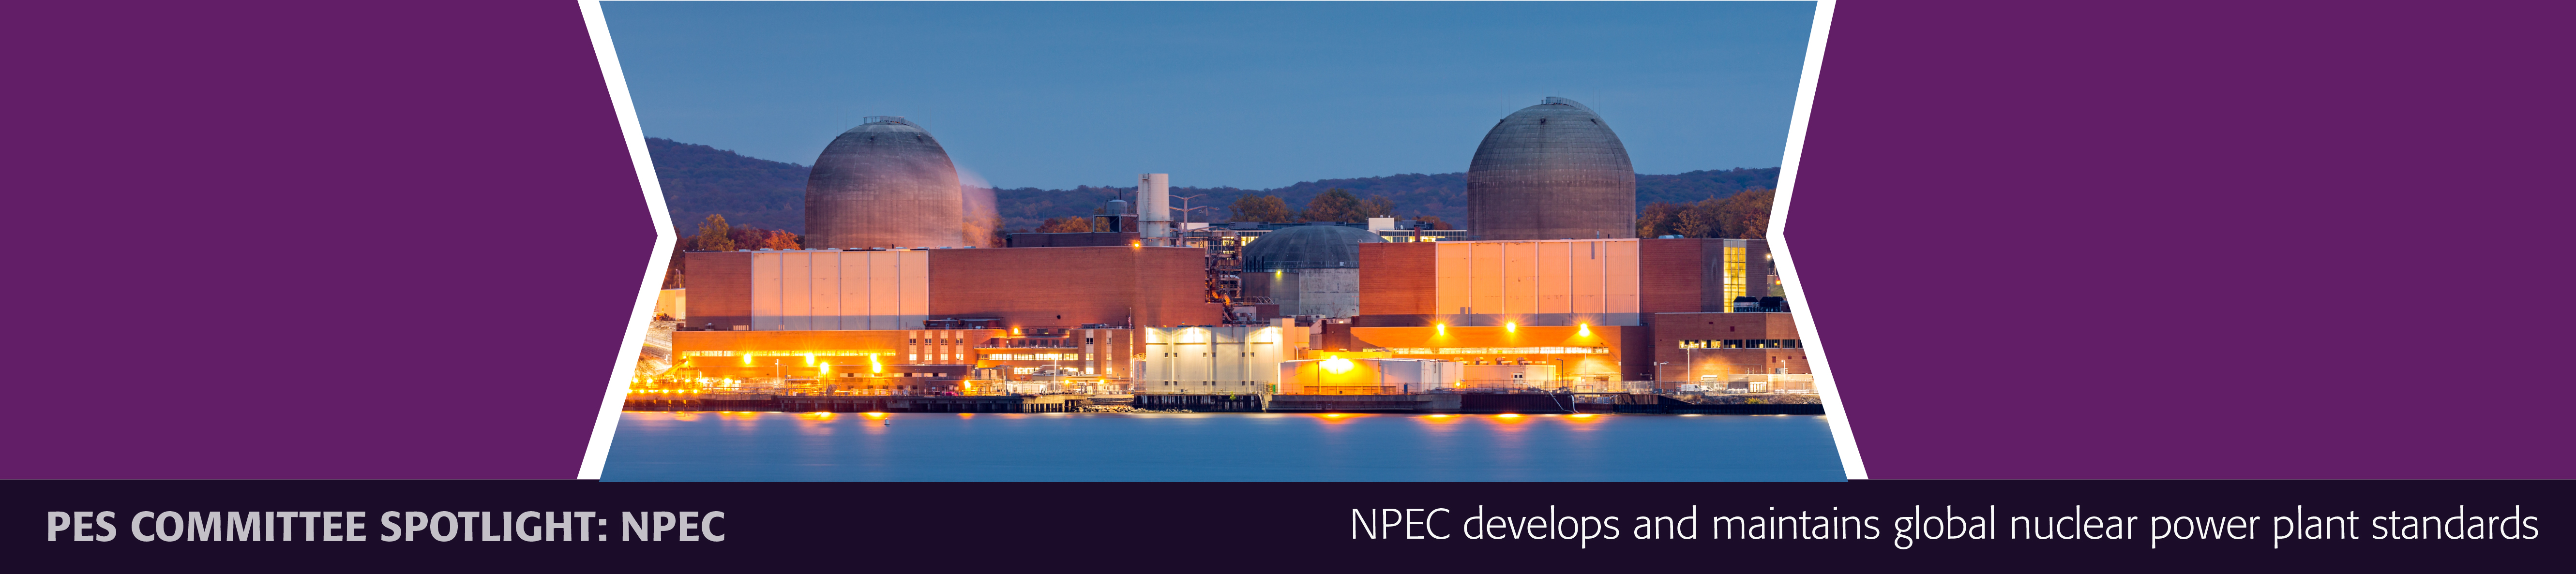 PES Committee Spotlight: NPEC